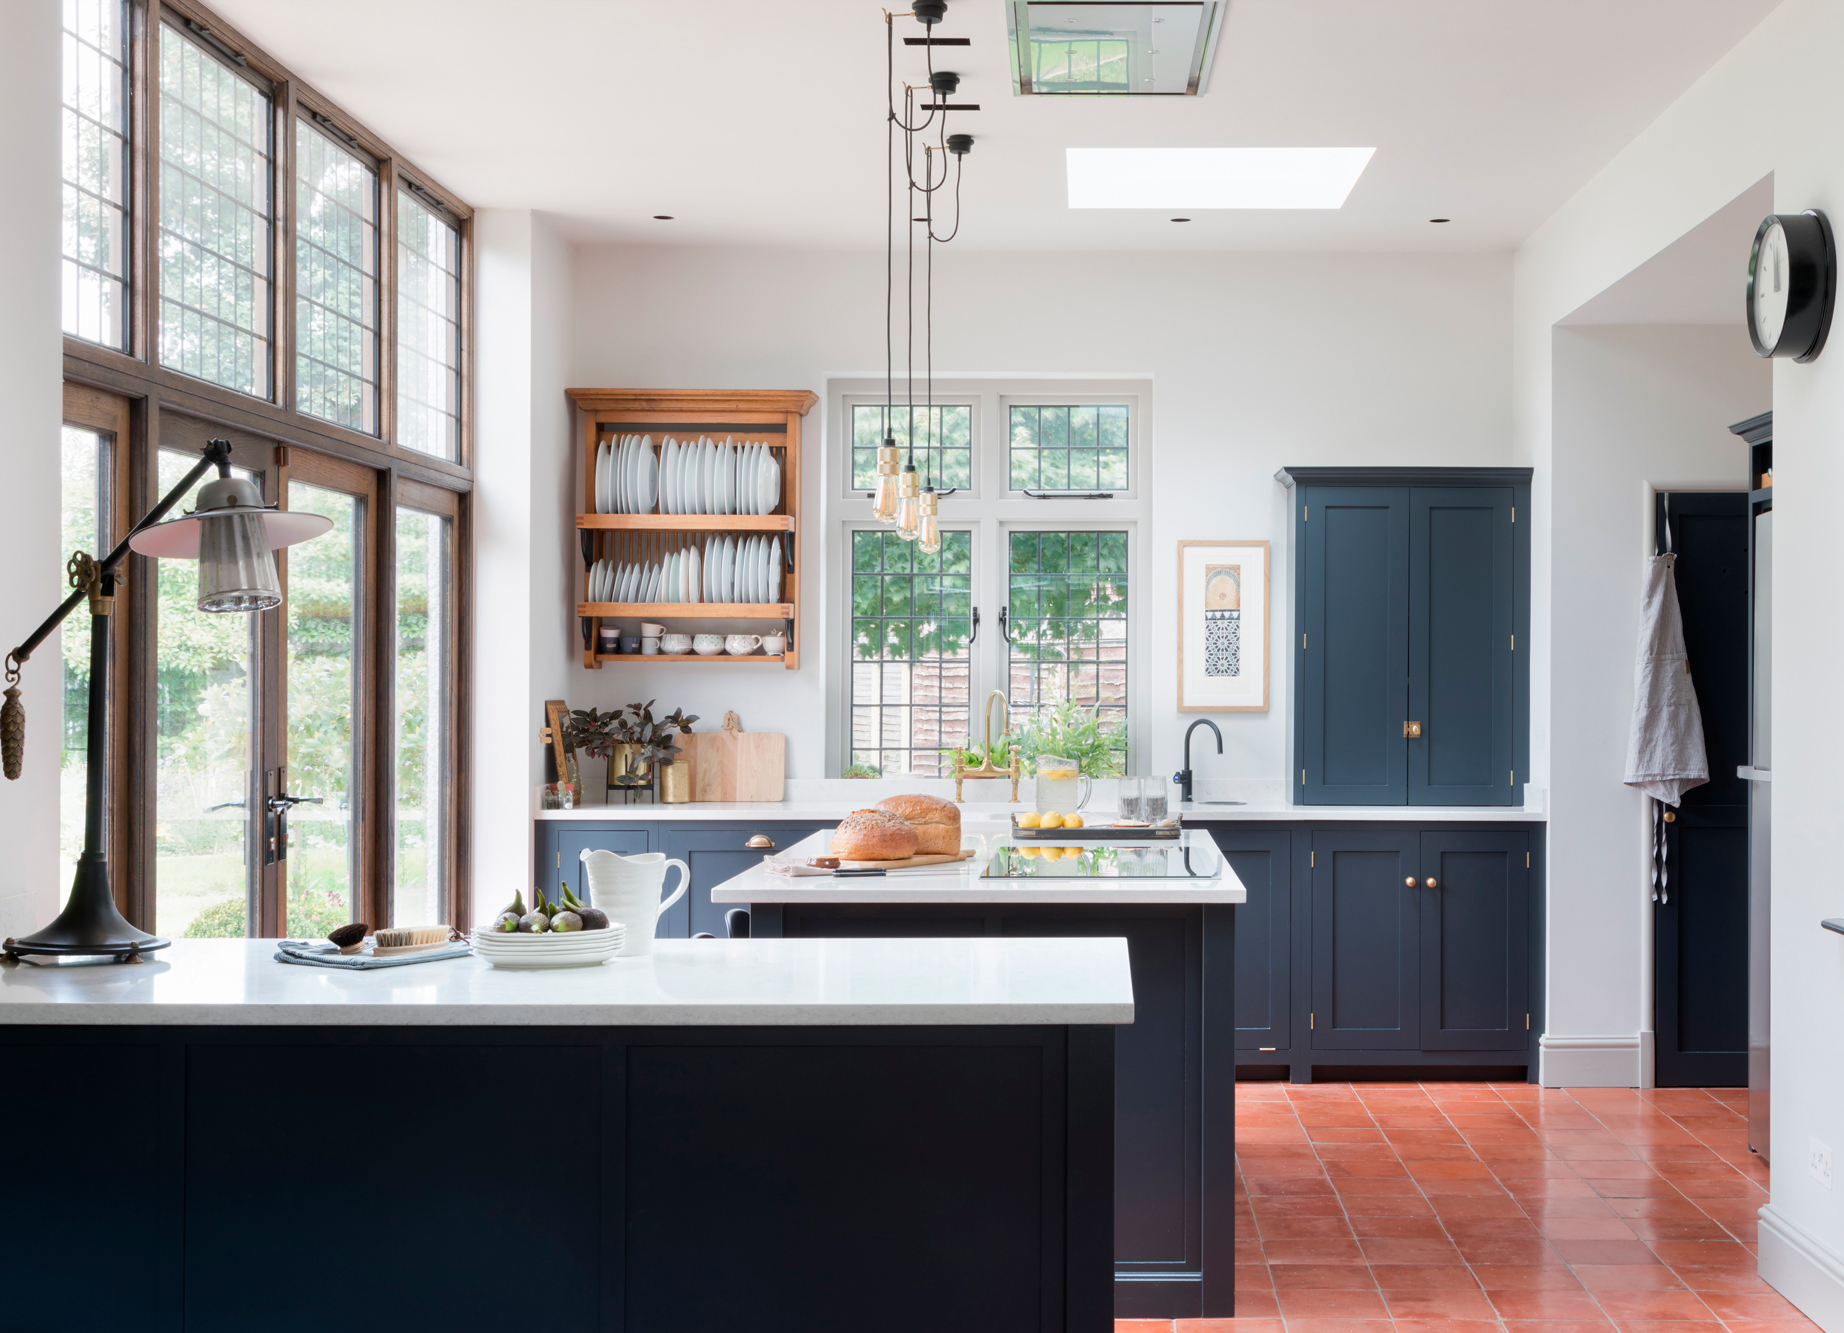 SOLUTION - Dark blue Shaker style kitchen, with antiqued brass taps and hardware.Reclaimed quarry tiles sourced to match the original hall tiles.Full lighting and electrical plan to zone the different areas and create functional, multipurpose lighting.Old window converted into a herb cupboard adds a quirky touch.